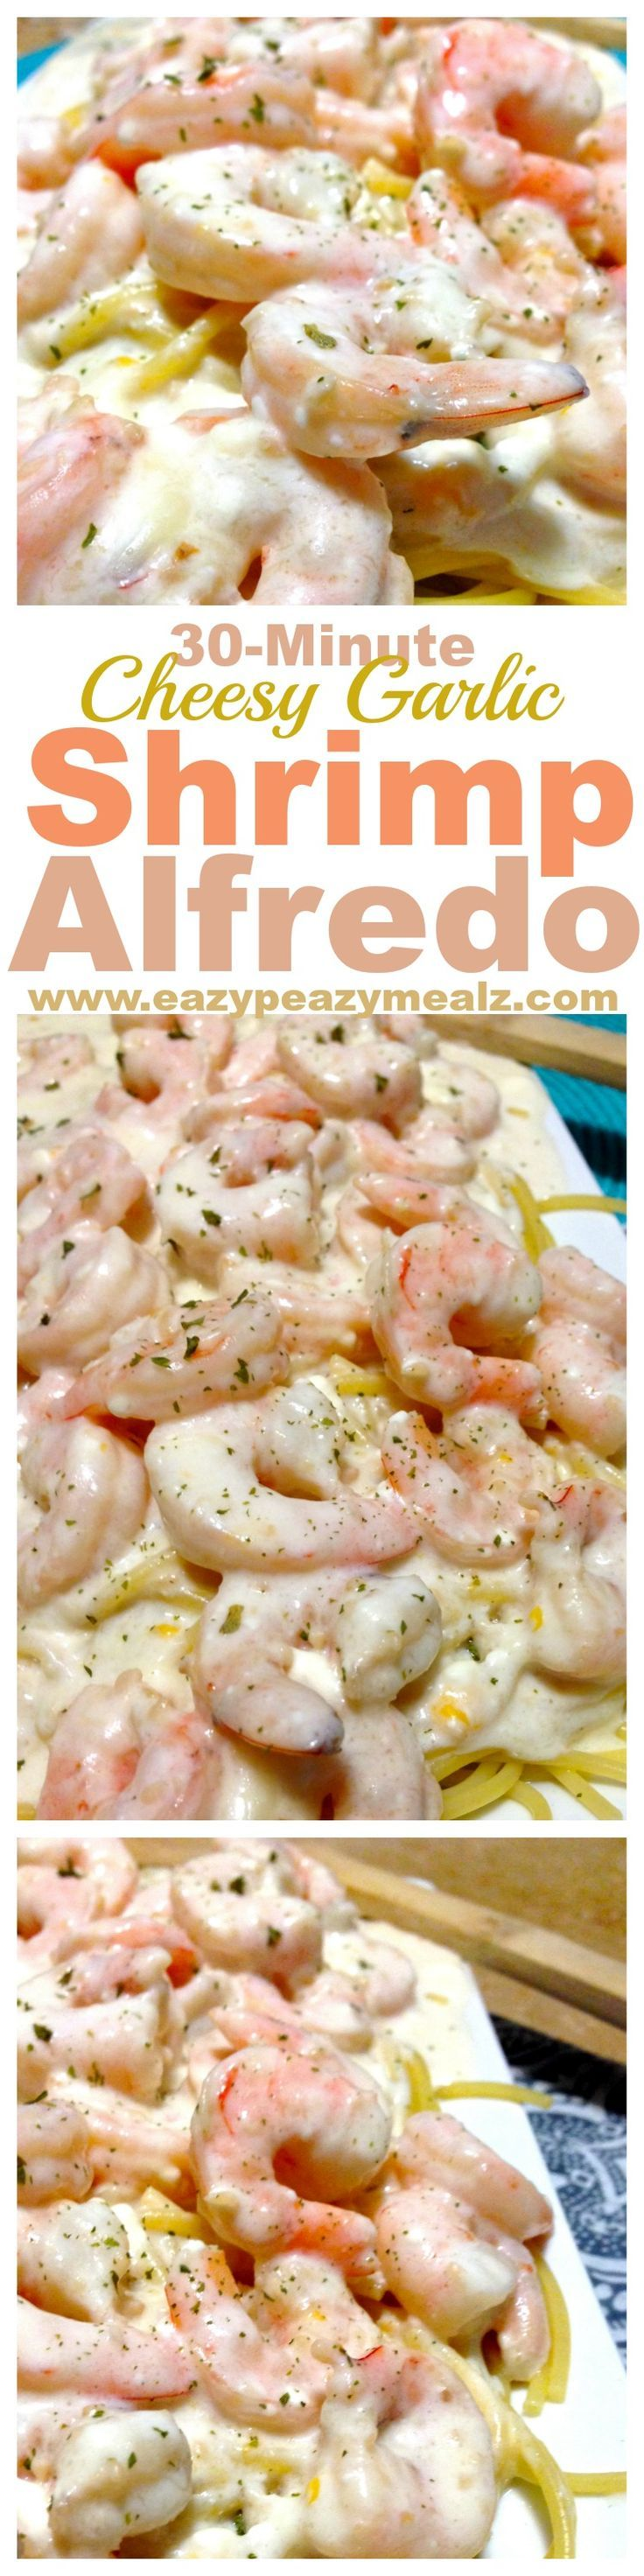 30 minutes for this cheesy garlic alfredo packed with shrimp and flavor! Perfect for a busy weeknight meal. Yum! @rachael_yerkes